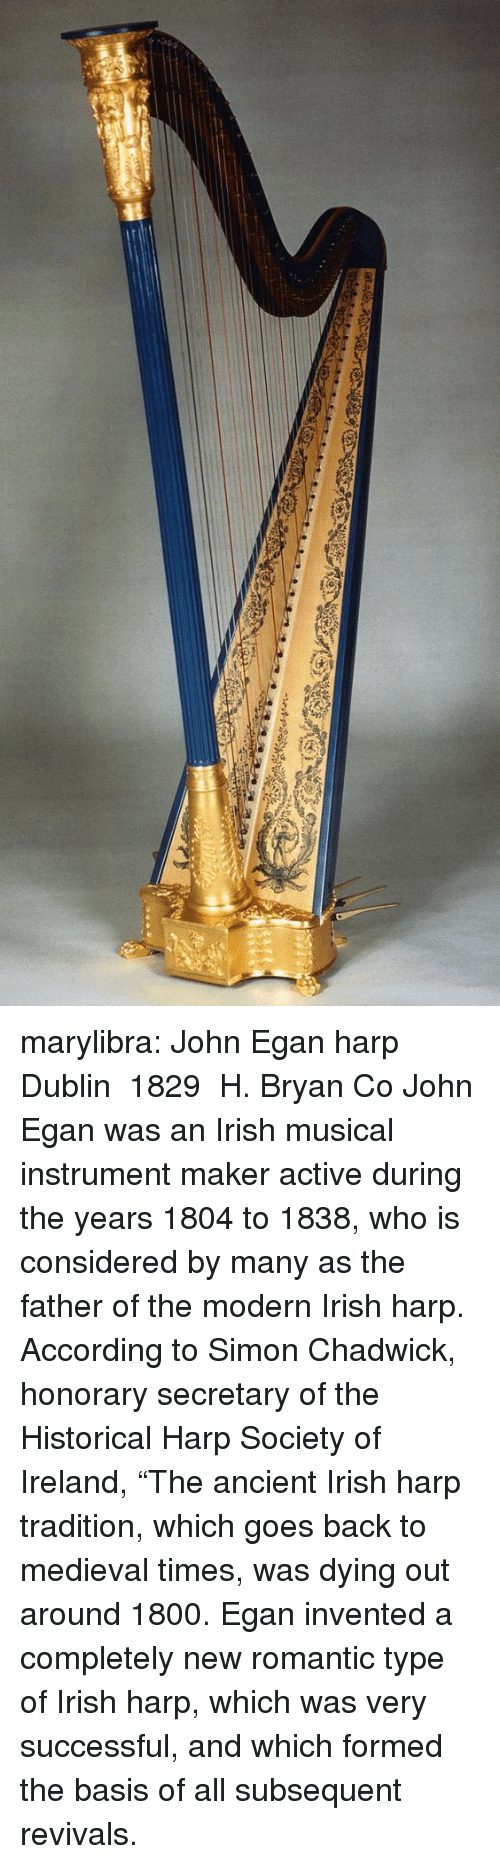 """Subsequent: marylibra: John Egan harp Dublin 1829 H. Bryan  Co John Egan was an Irish musical instrument maker active during the years 1804 to 1838, who is considered by many as the father of the modern Irish harp. According to Simon Chadwick, honorary secretary of the Historical Harp Society of Ireland, """"The ancient Irish harp tradition, which goes back to medieval times, was dying out around 1800. Egan invented a completely new romantic type of Irish harp, which was very successful, and which formed the basis of all subsequent revivals."""